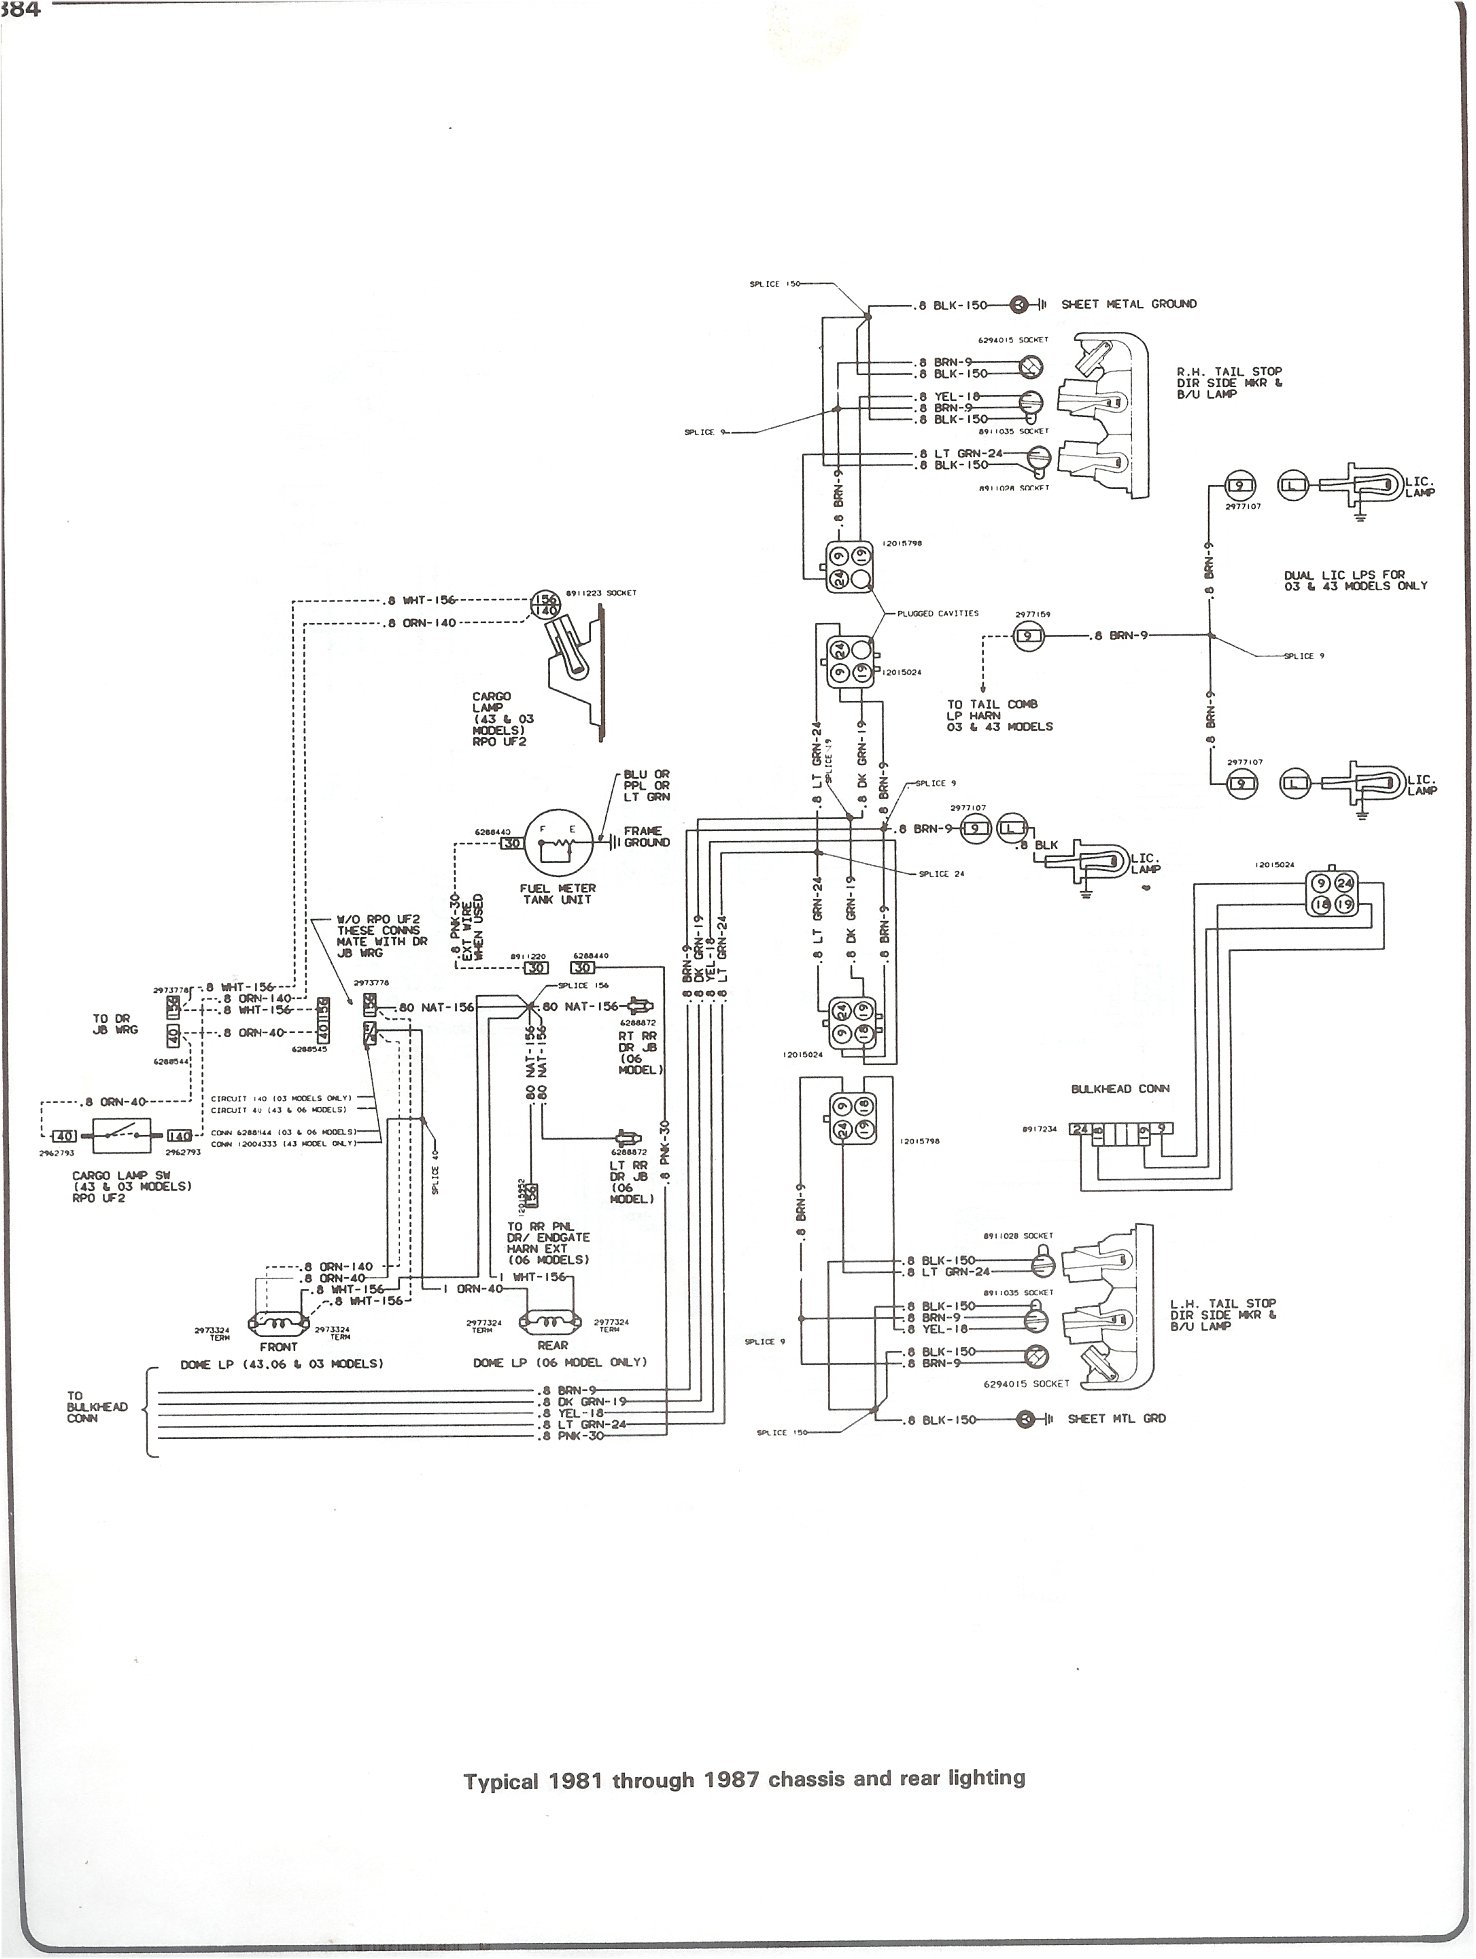 81 87_chass_rr_light complete 73 87 wiring diagrams 73-87 Chevy Wiring Diagrams Site at mifinder.co